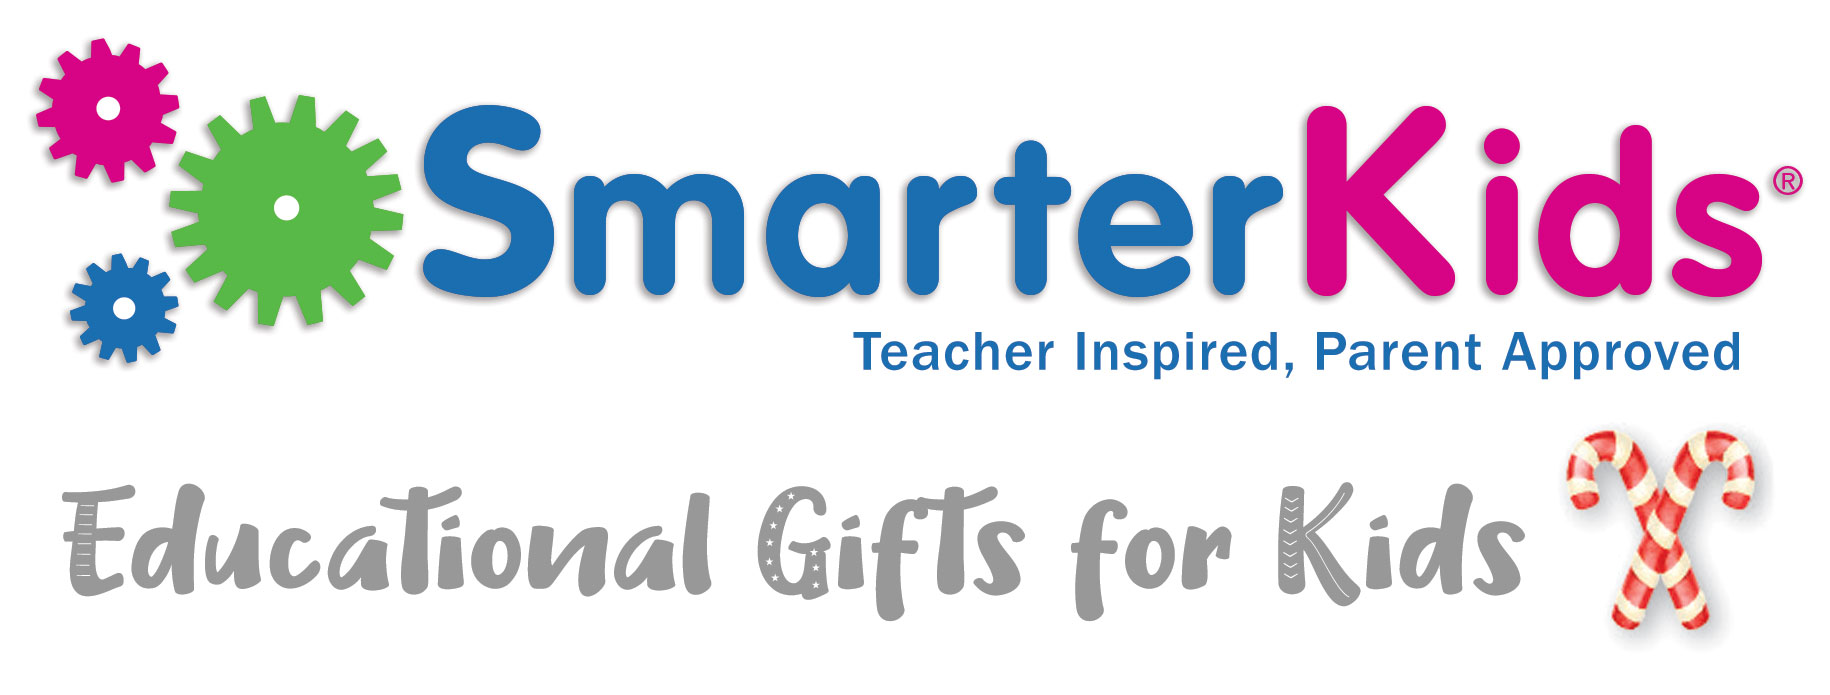 Gift Guide - SmarterKids - Teacher Inspired, Parent Approved